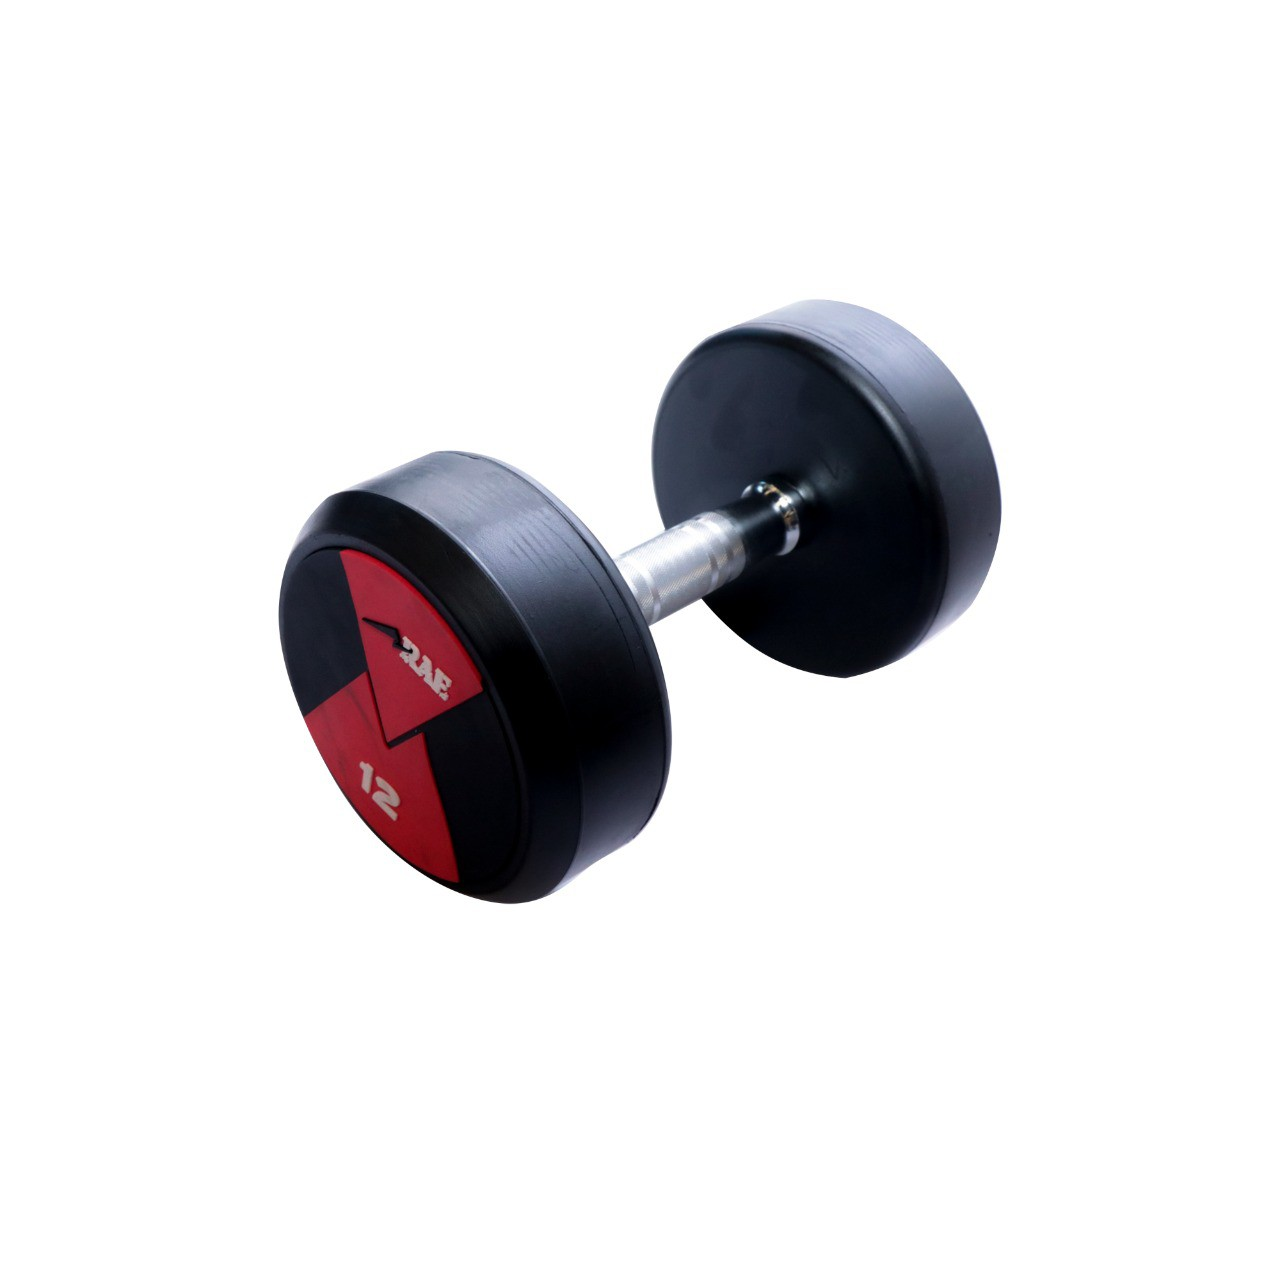 OUTLET - KIT DUMBELLS RAE POWER HEAVY COM 5 PARES